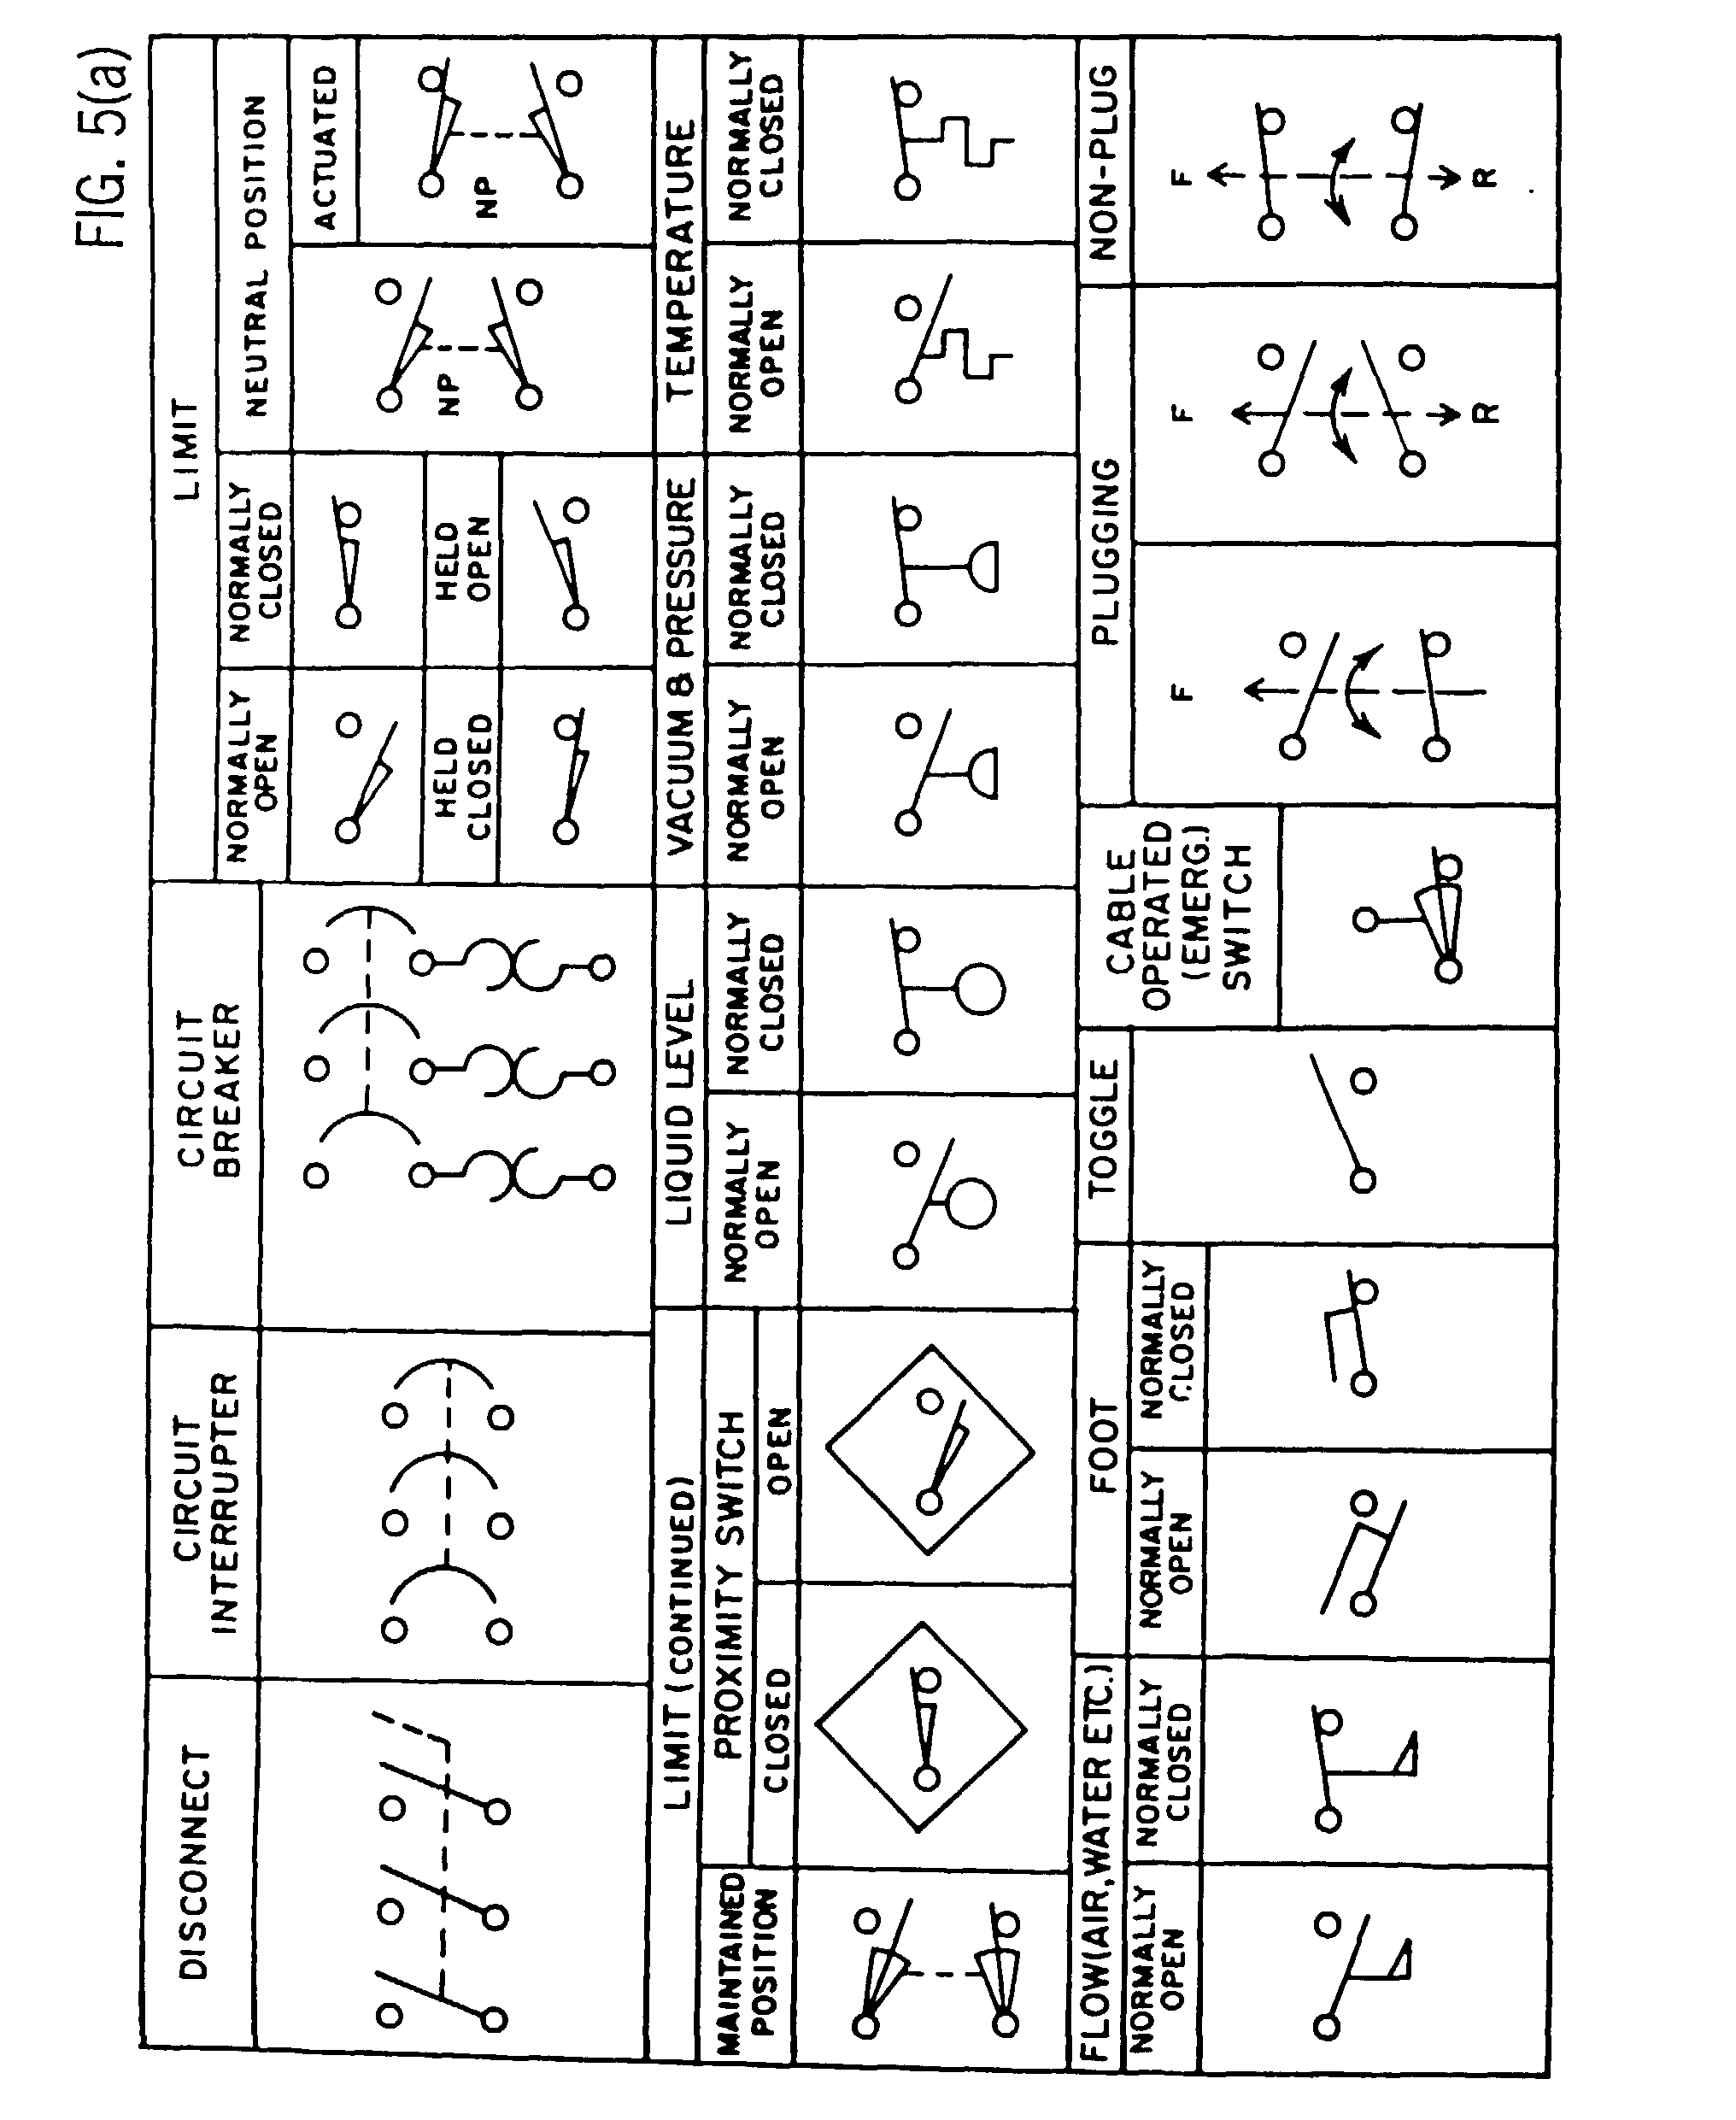 Plc Wiring Diagram Symbols Collection Circuit Download Ponent Ladder Logic Help Web Based Demo